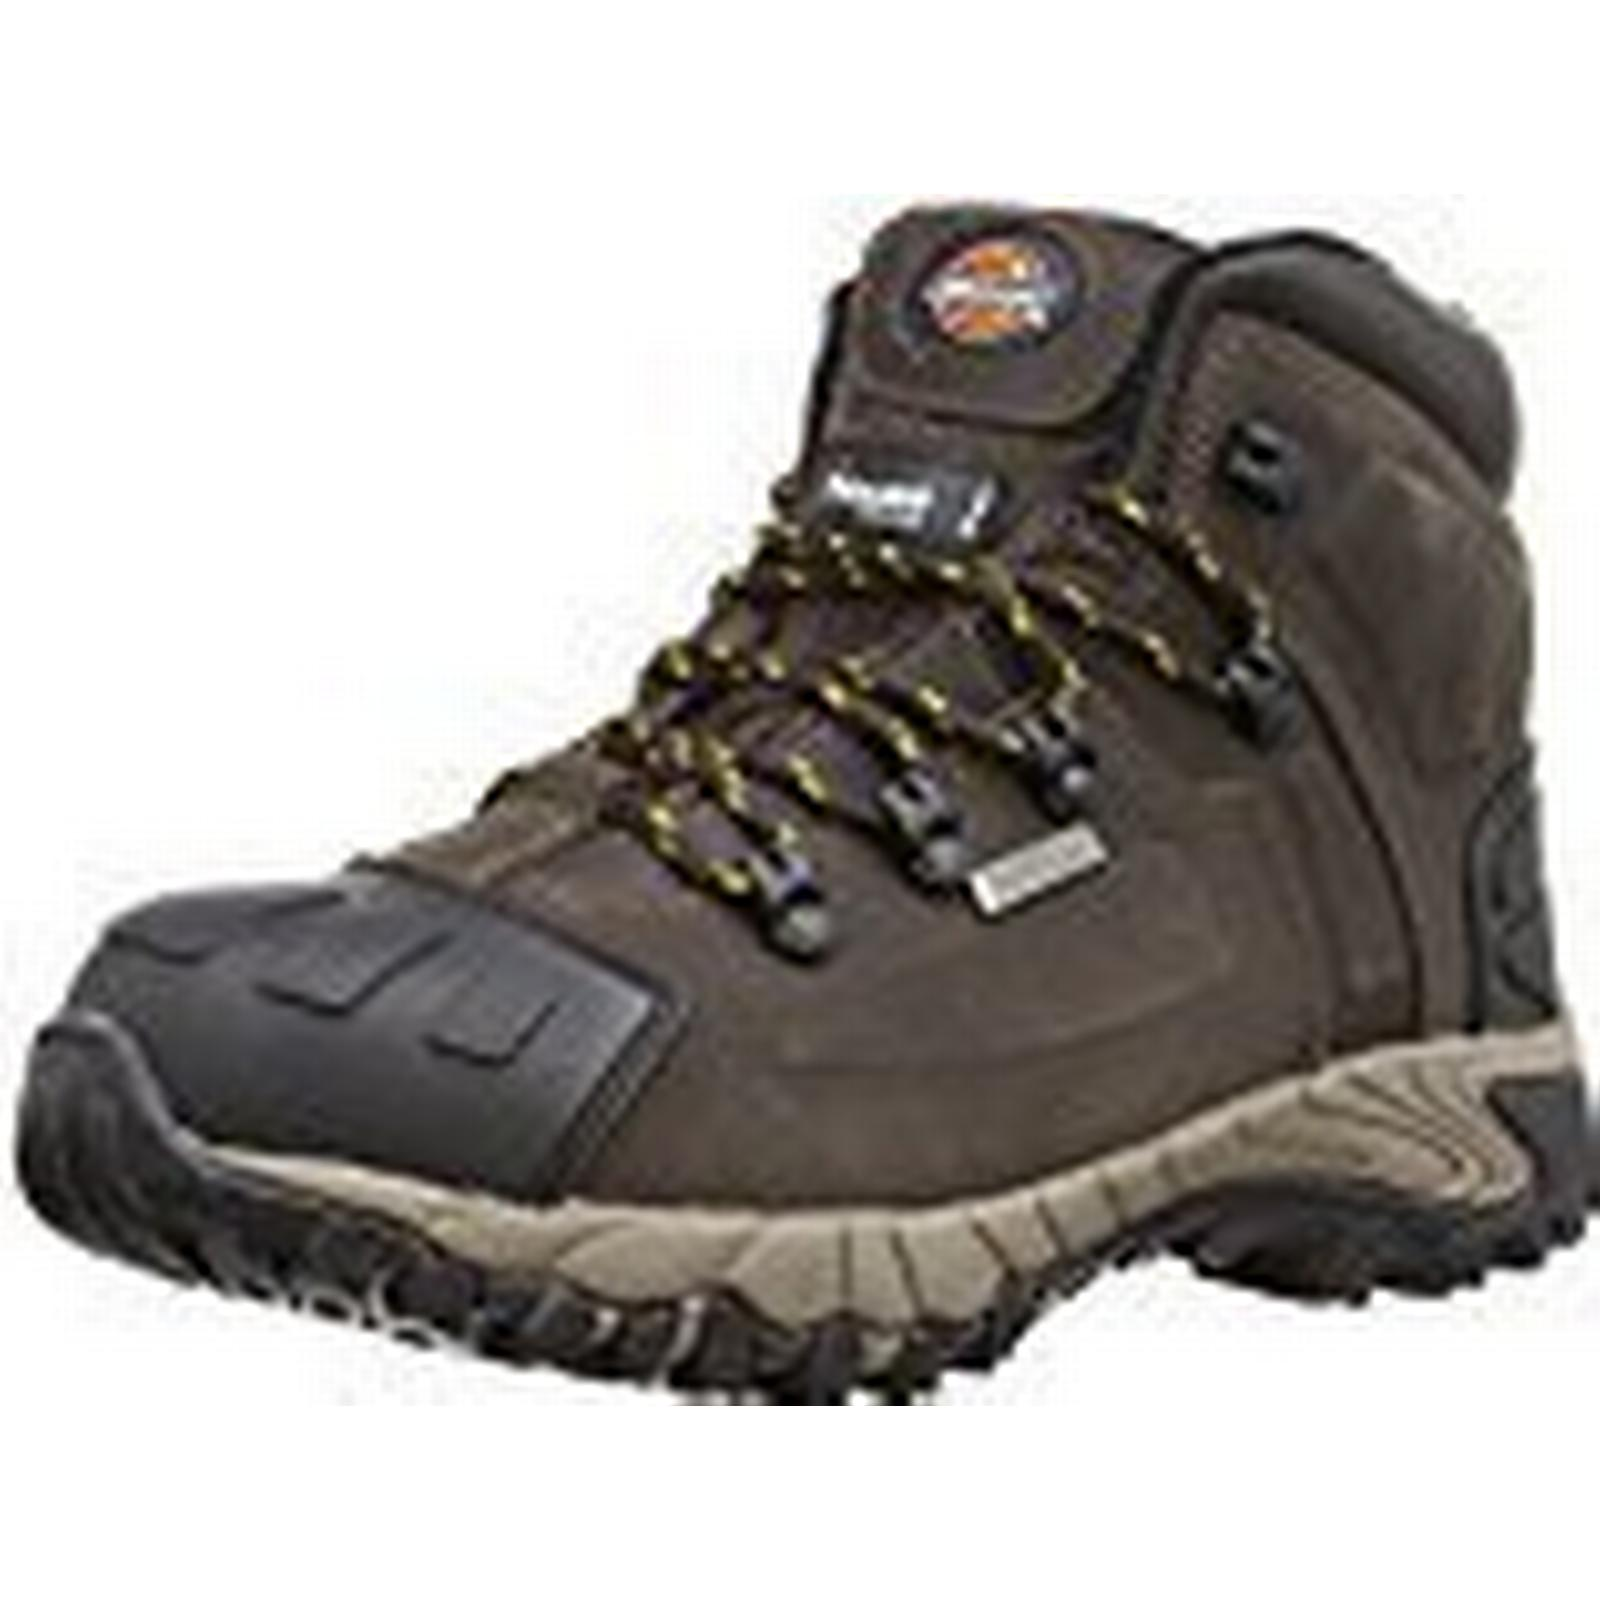 Dickies Unisex-Adult Medway S3 Safety Boots 42 FD23310 Brown 8 UK, 42 Boots EU - EN safety certified d5c4c0